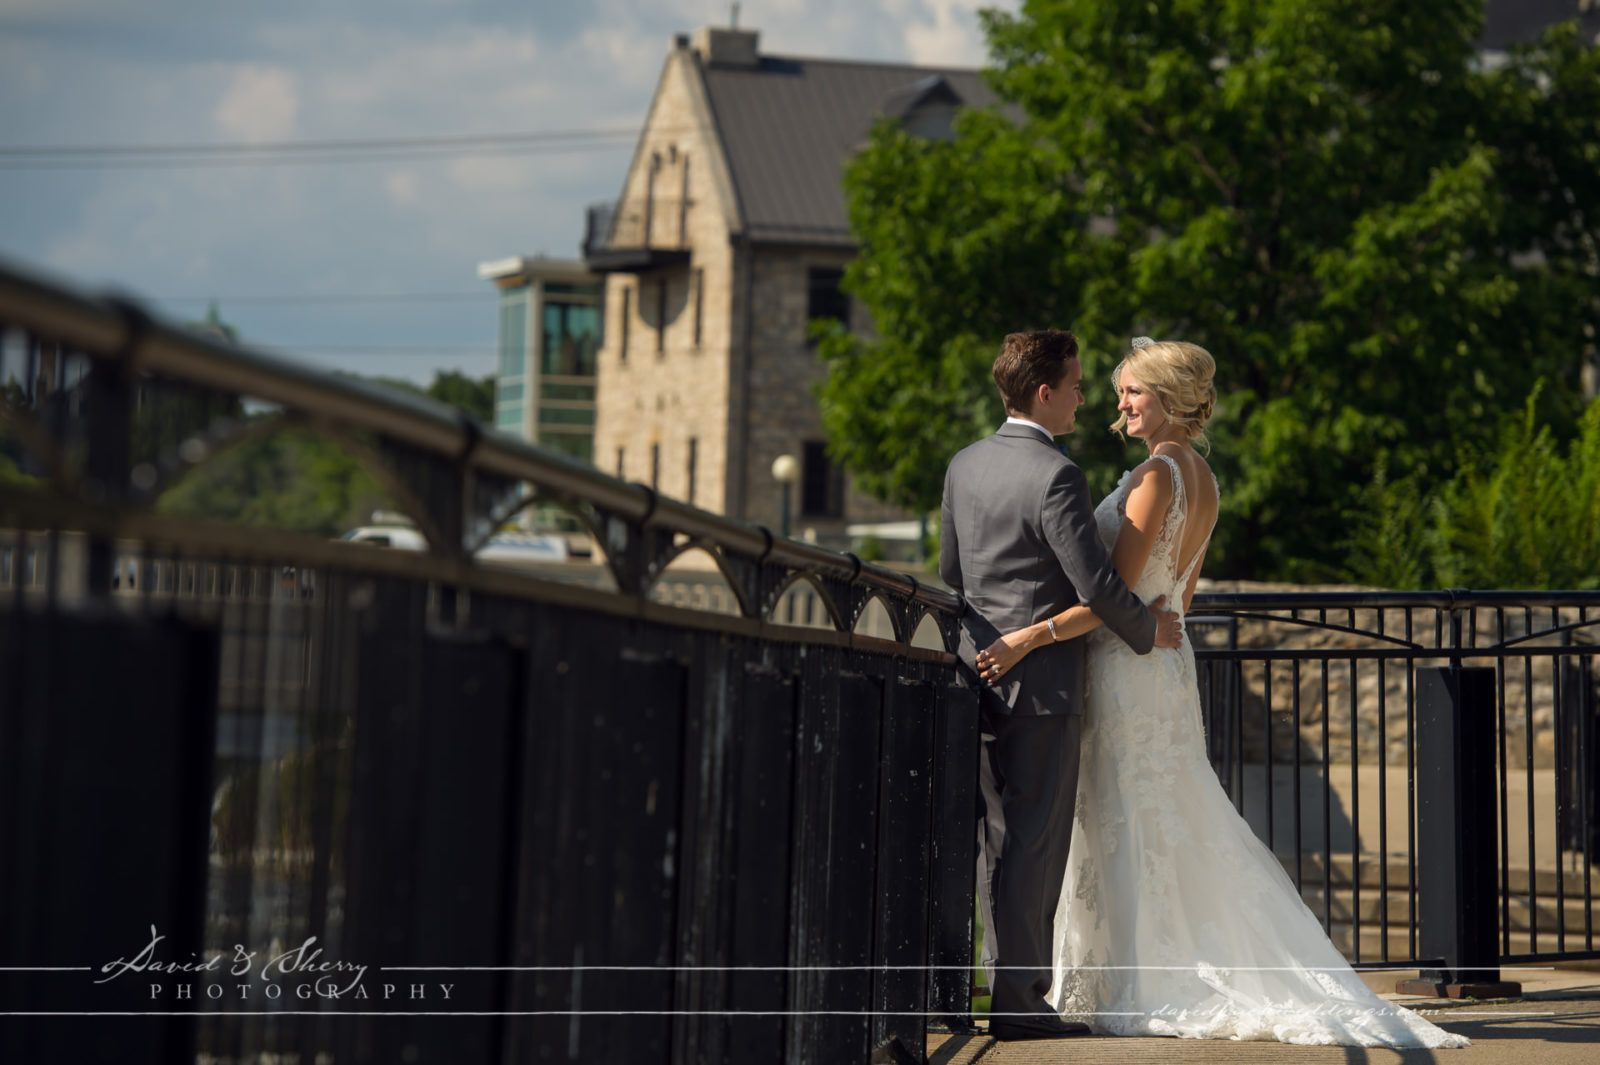 Luxury Wedding Photography At Cambridge Mill Venue Kitchener Waterloo Guelph And Weddings Are Best Held Here